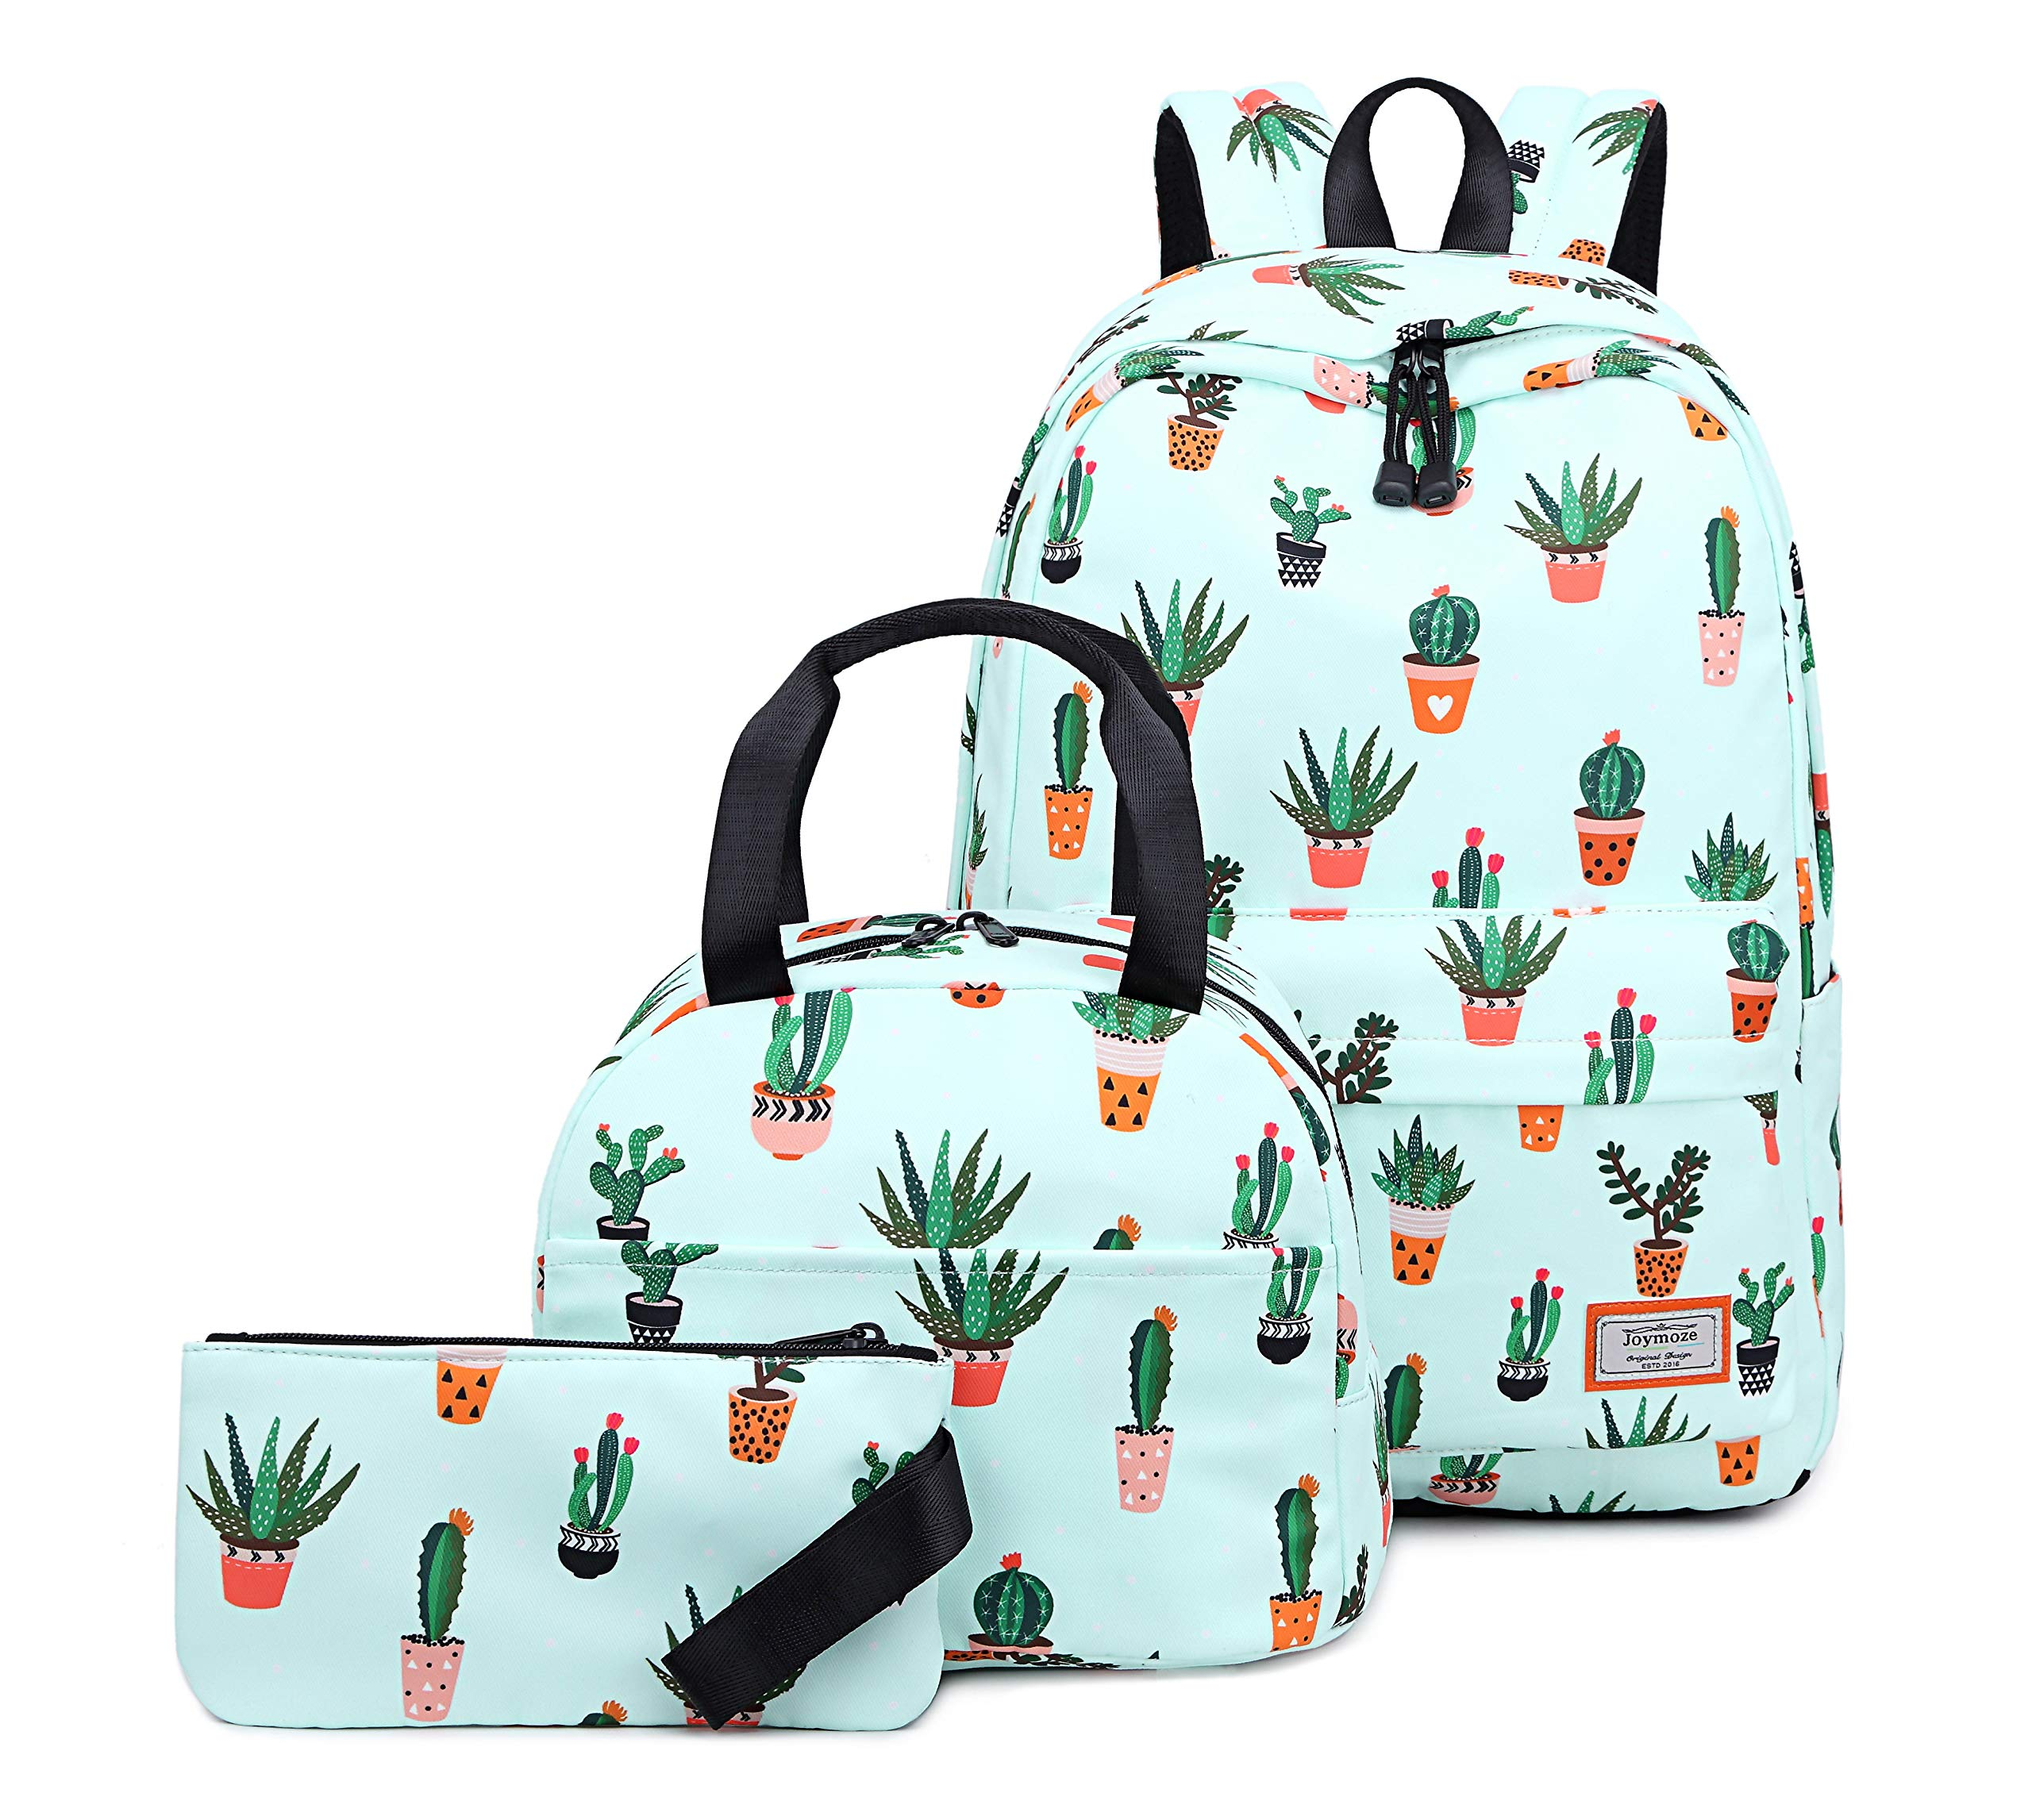 Joymoze Water Resistant Teen Girl Bookbag with Lunch Bag and Pencil Purse Cactus